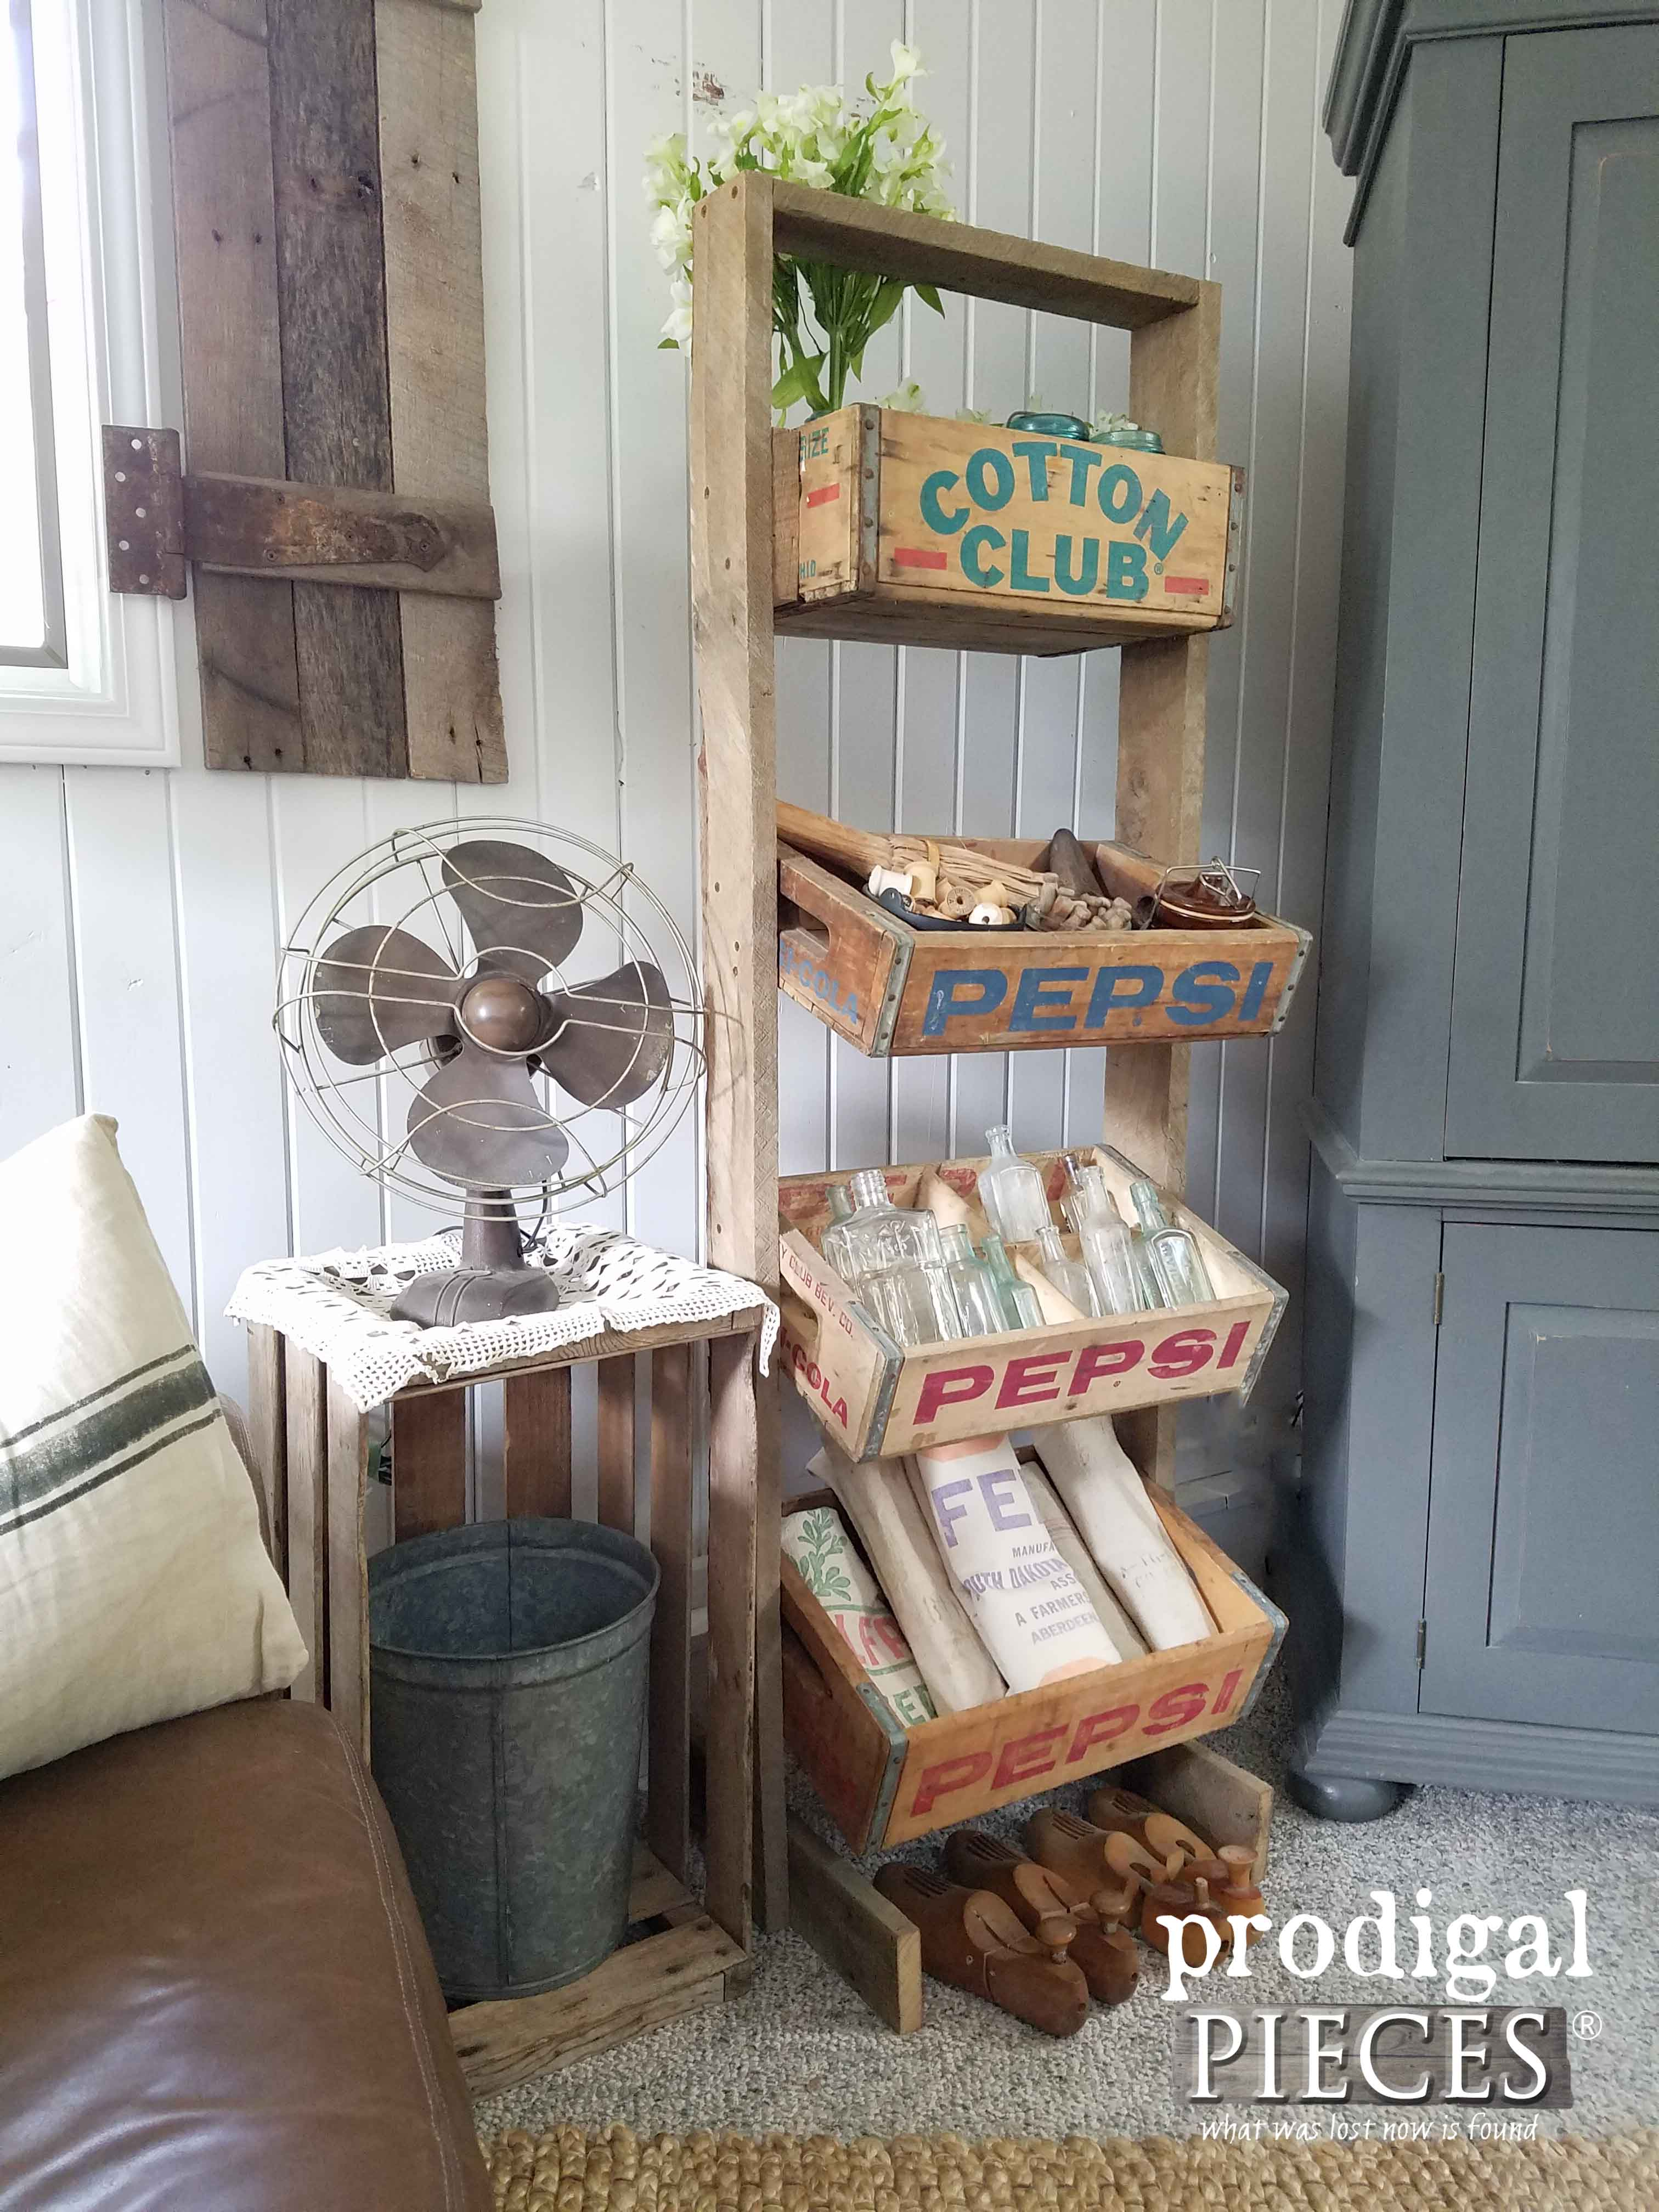 Rustic Soda Crate Stand Made with Reclaimed Barn Wood by Prodigal Pieces | www.prodigalpieces.com